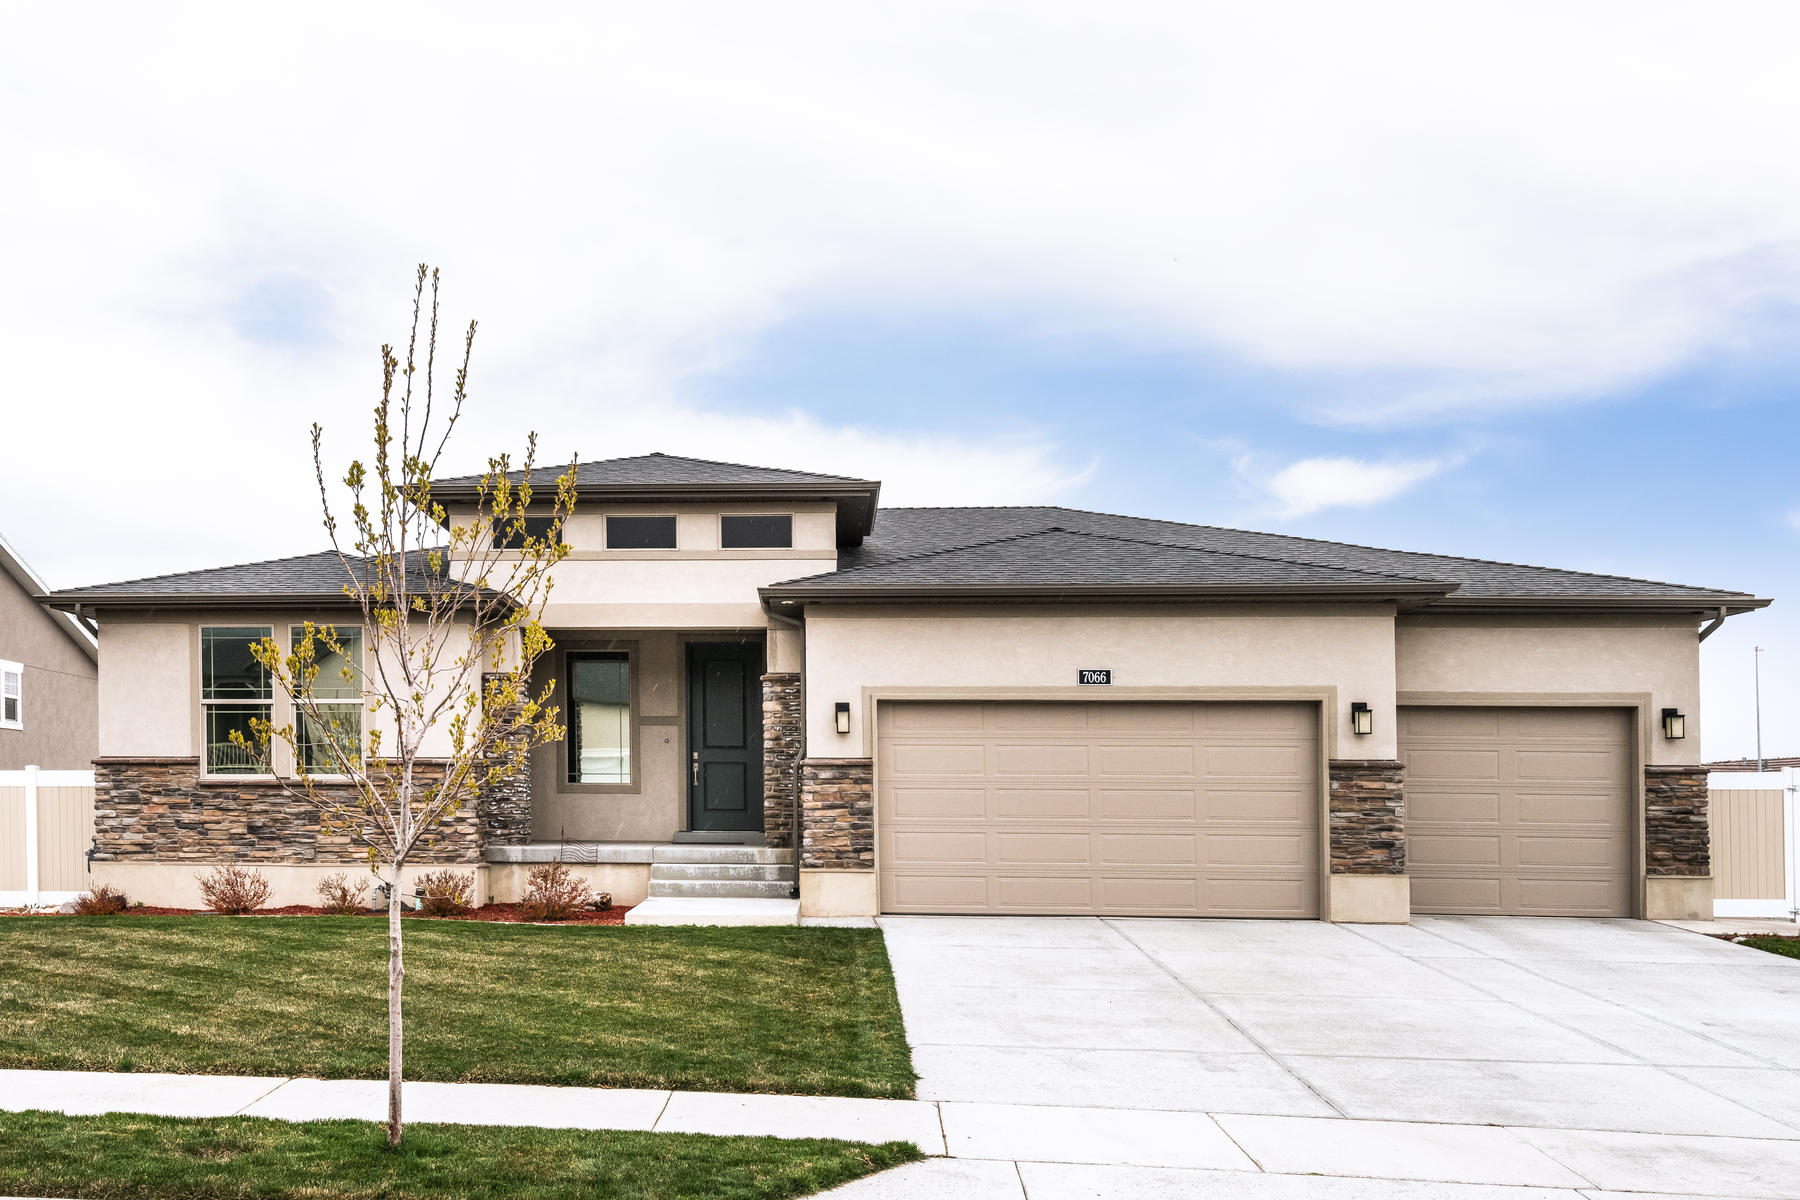 Single Family Homes for Sale at Immaculate Rambler 7066 Jayson Bend Dr West Jordan, Utah 84081 United States